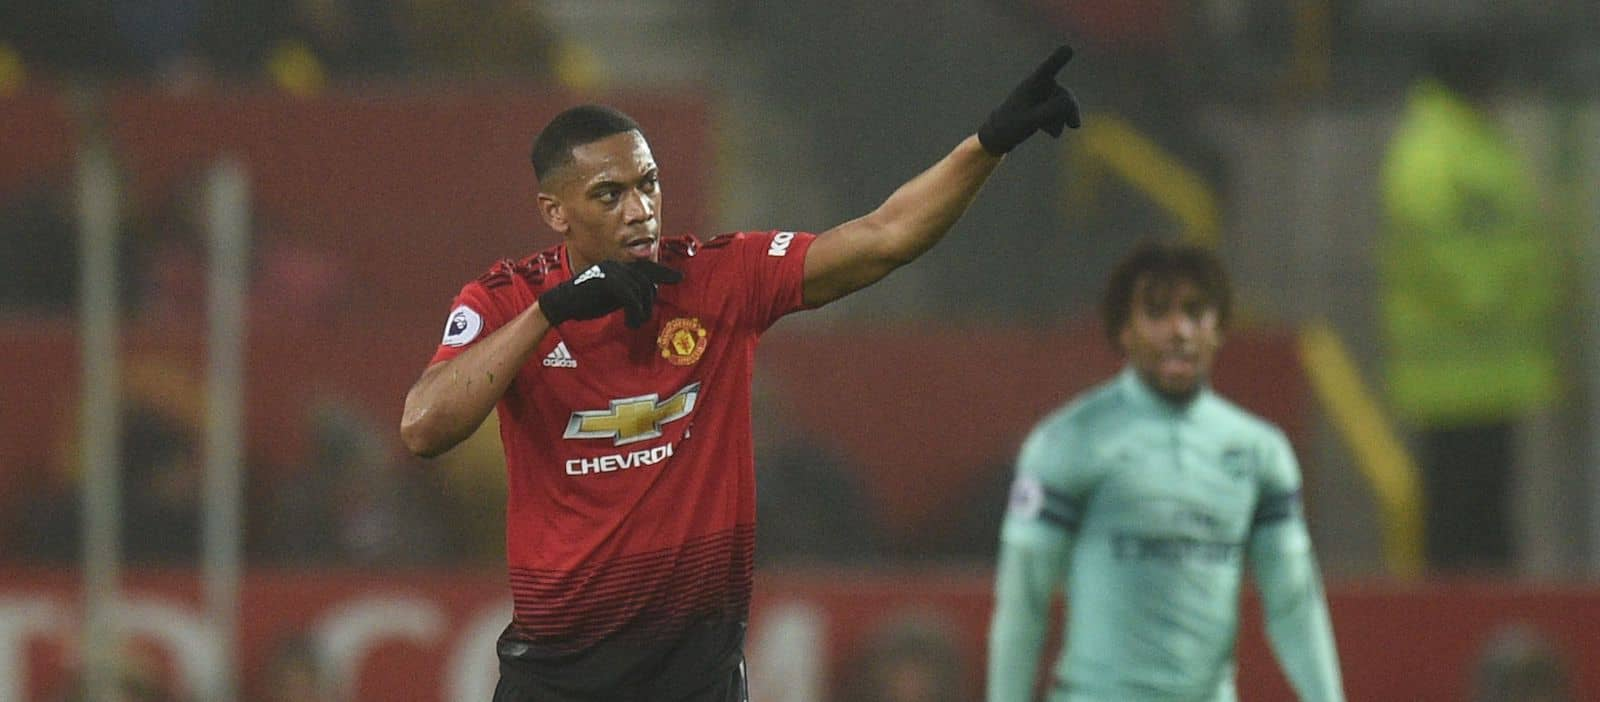 Anthony Martial steps up for Manchester United in big clash yet again